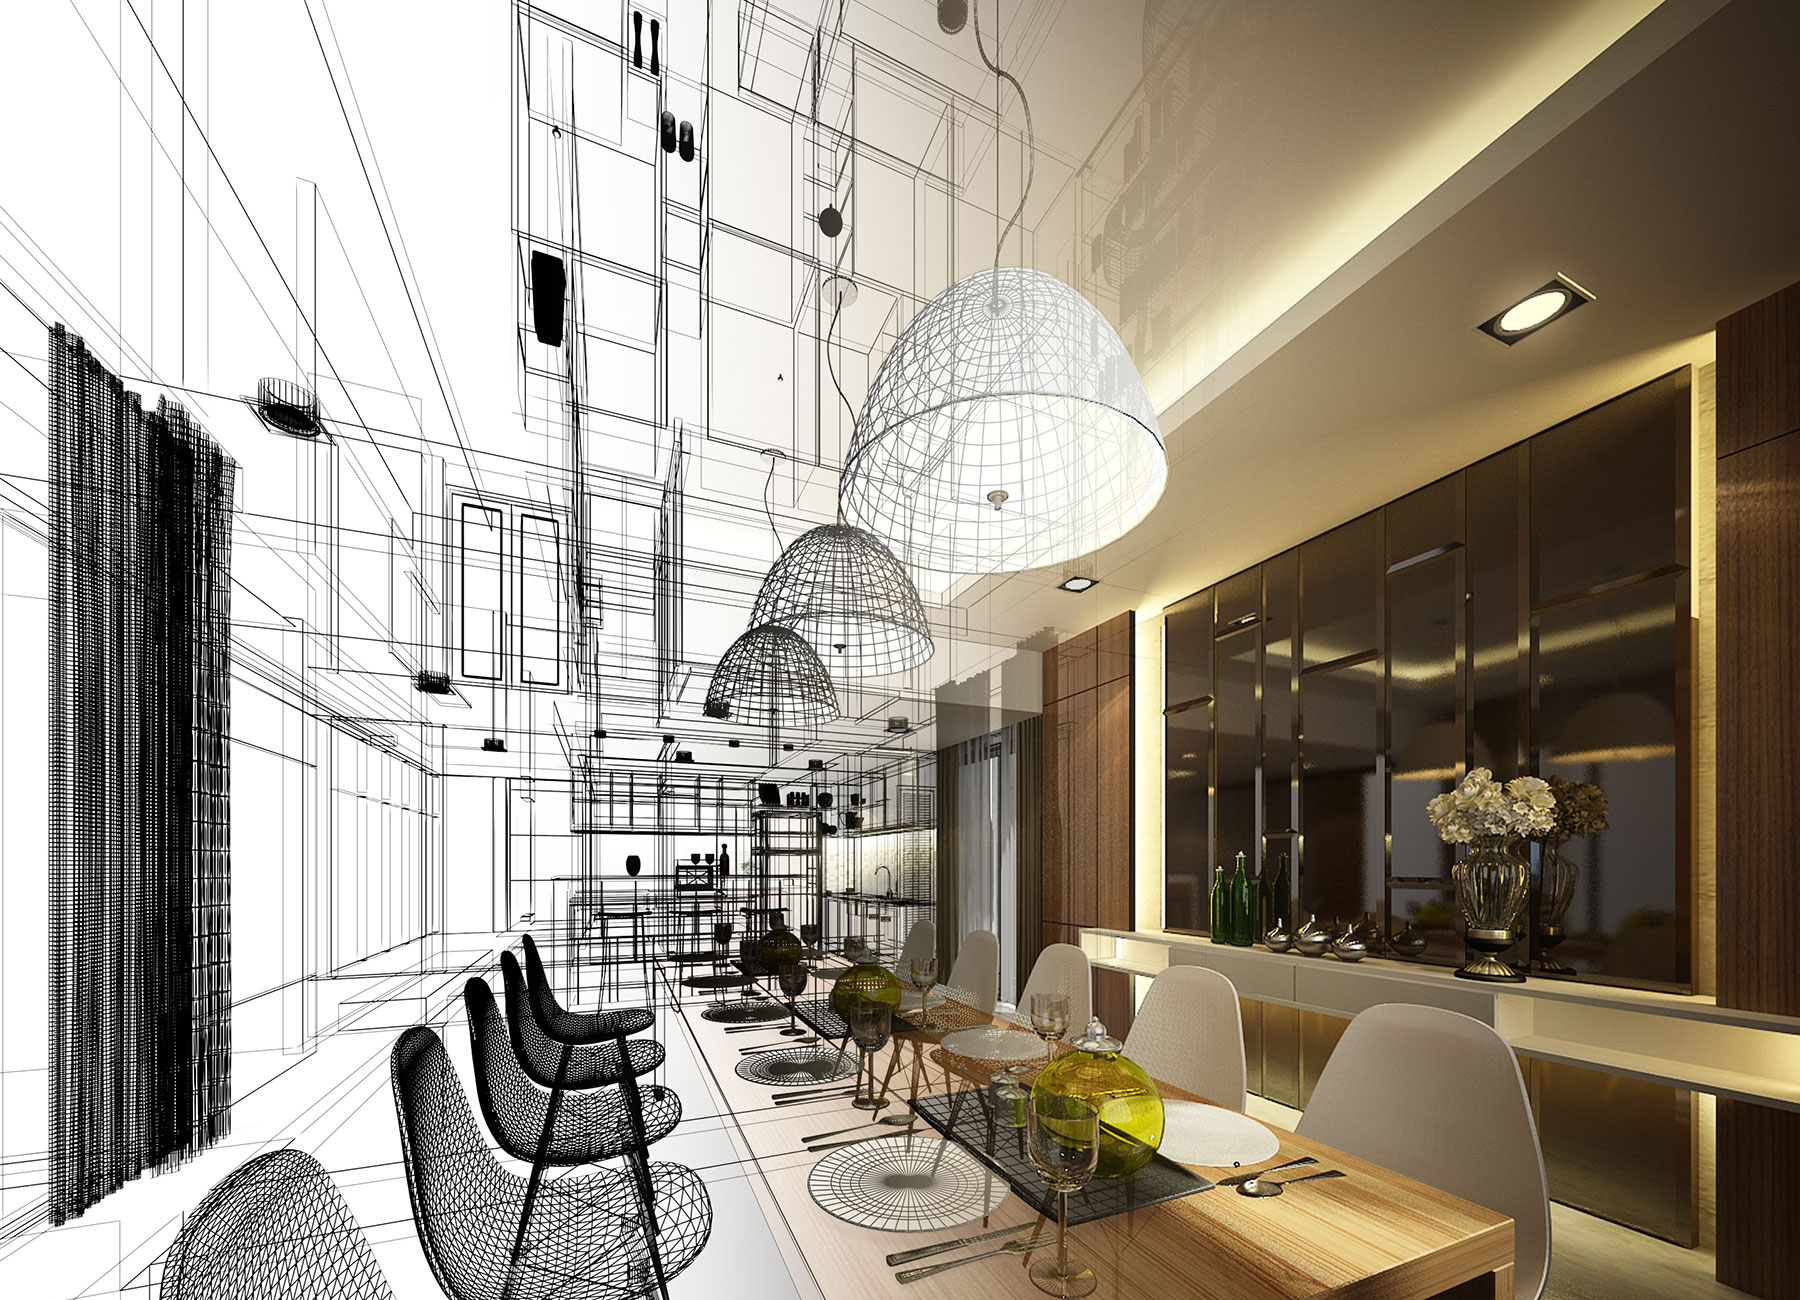 Stylish dining room. Concept drawing & completed design.